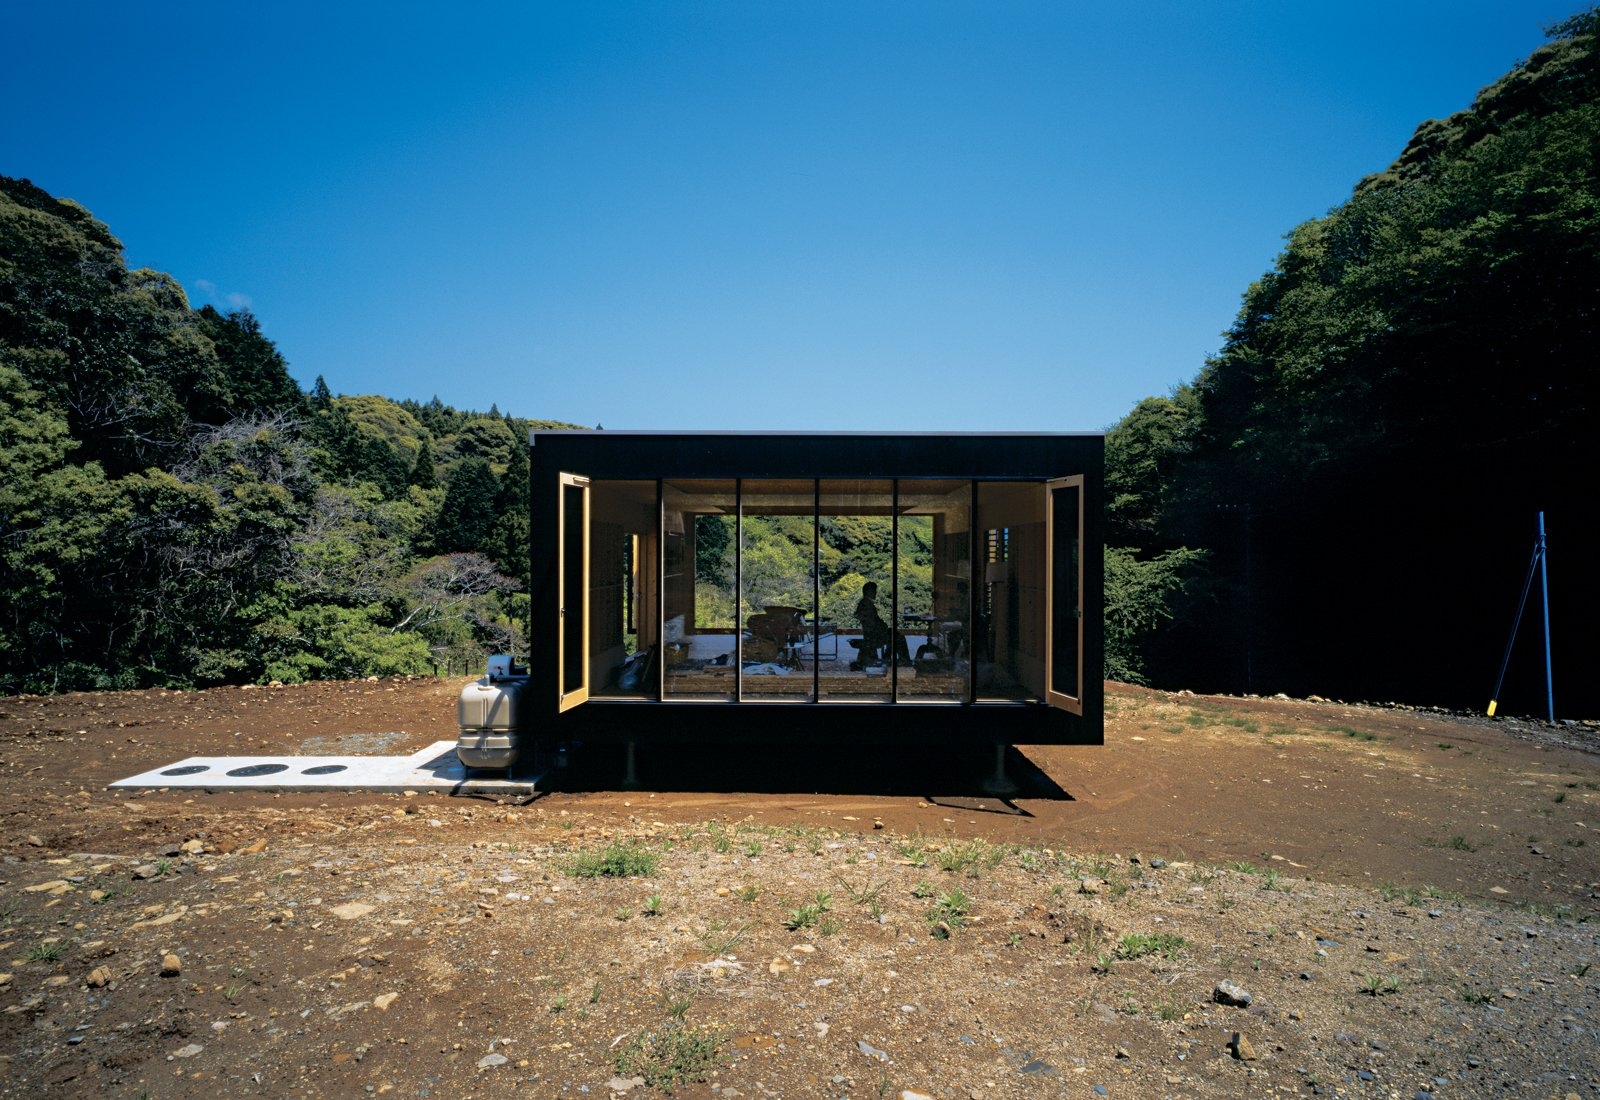 Architect Tadashi Murai designed this remote retreat for a Tokyo transplant who abandoned his corporate existence. Japanese Homes by Dwell